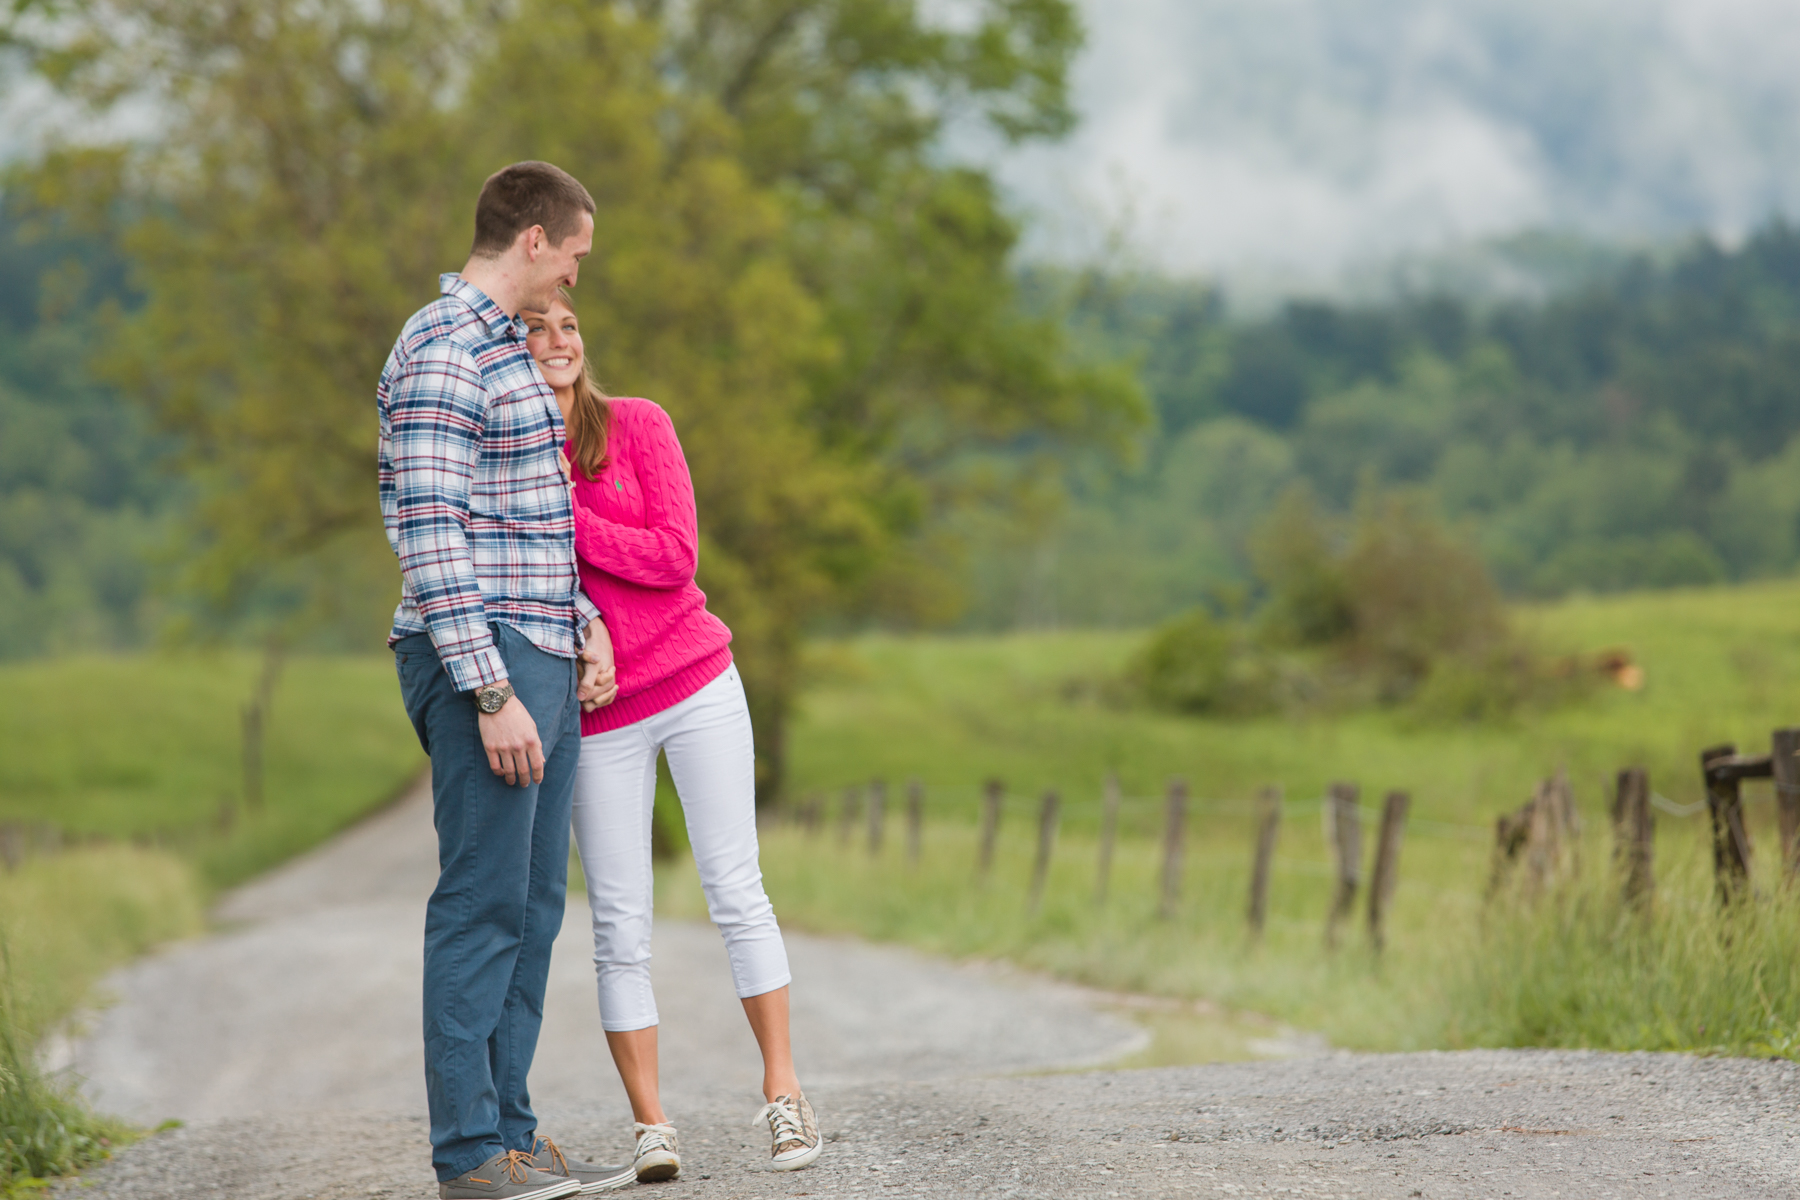 Cades-Cove-marriage-proposal-01